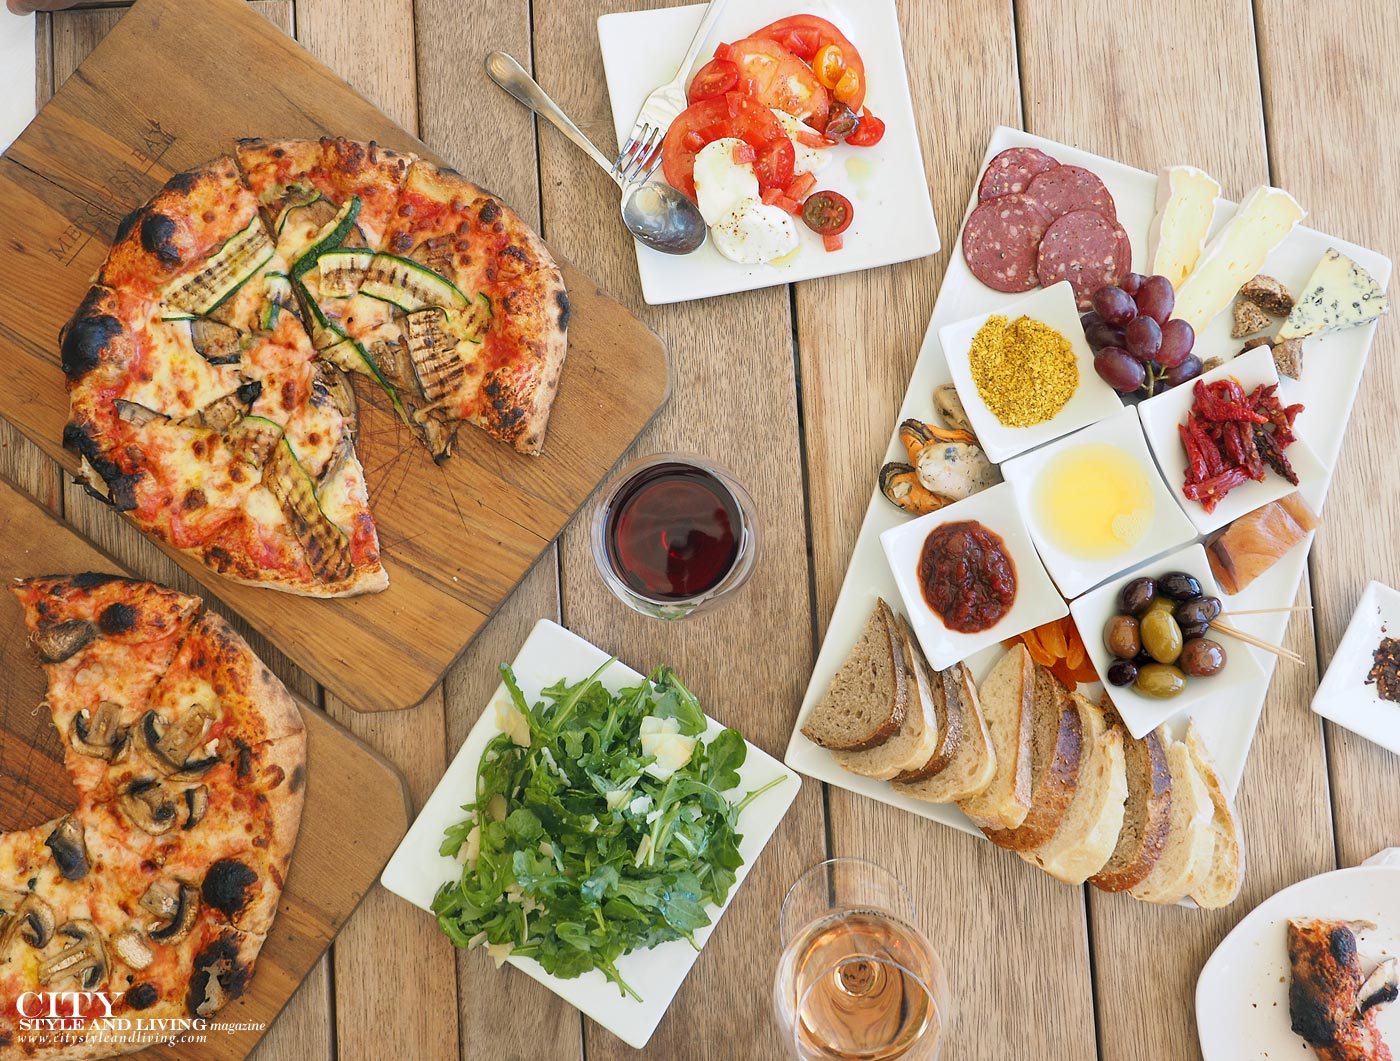 City Style and Living magazine new zealand coromandel mercury bay estate winery Italian lunch charcuterie and pizza